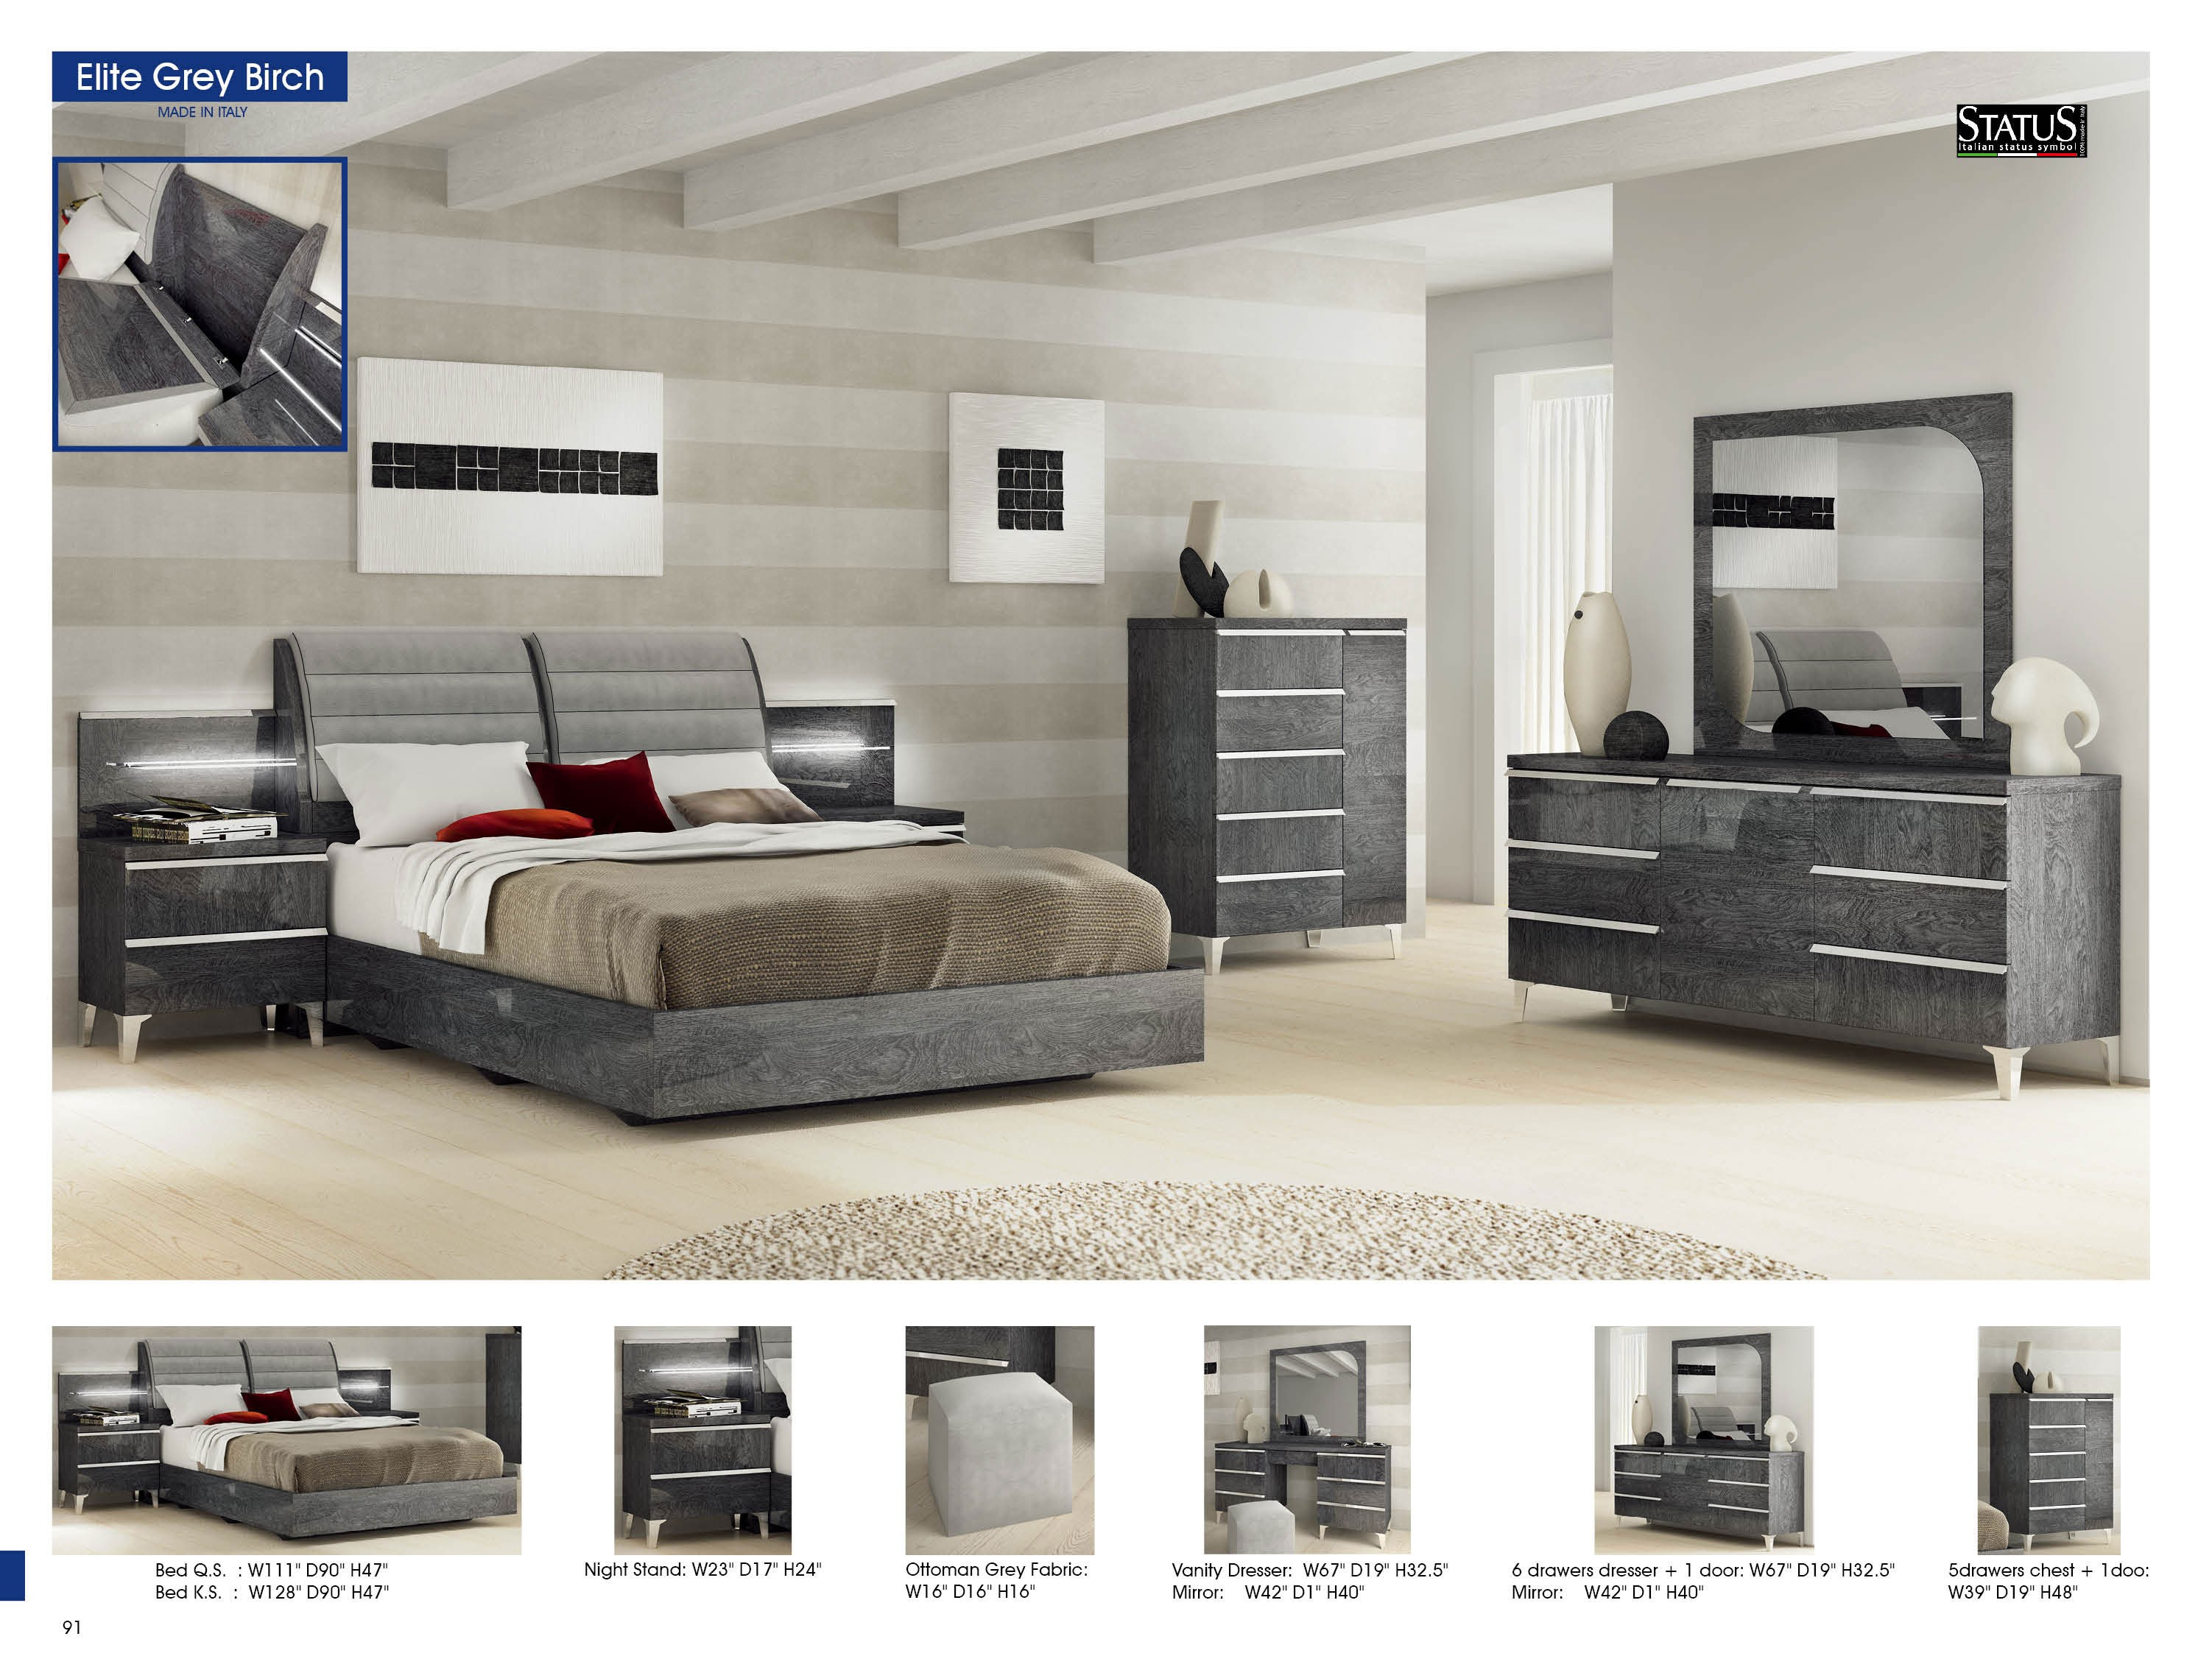 Elite Bedroom Set By Esf White Bedroom Set By Esf Buy From Nova Interiors Contemporary